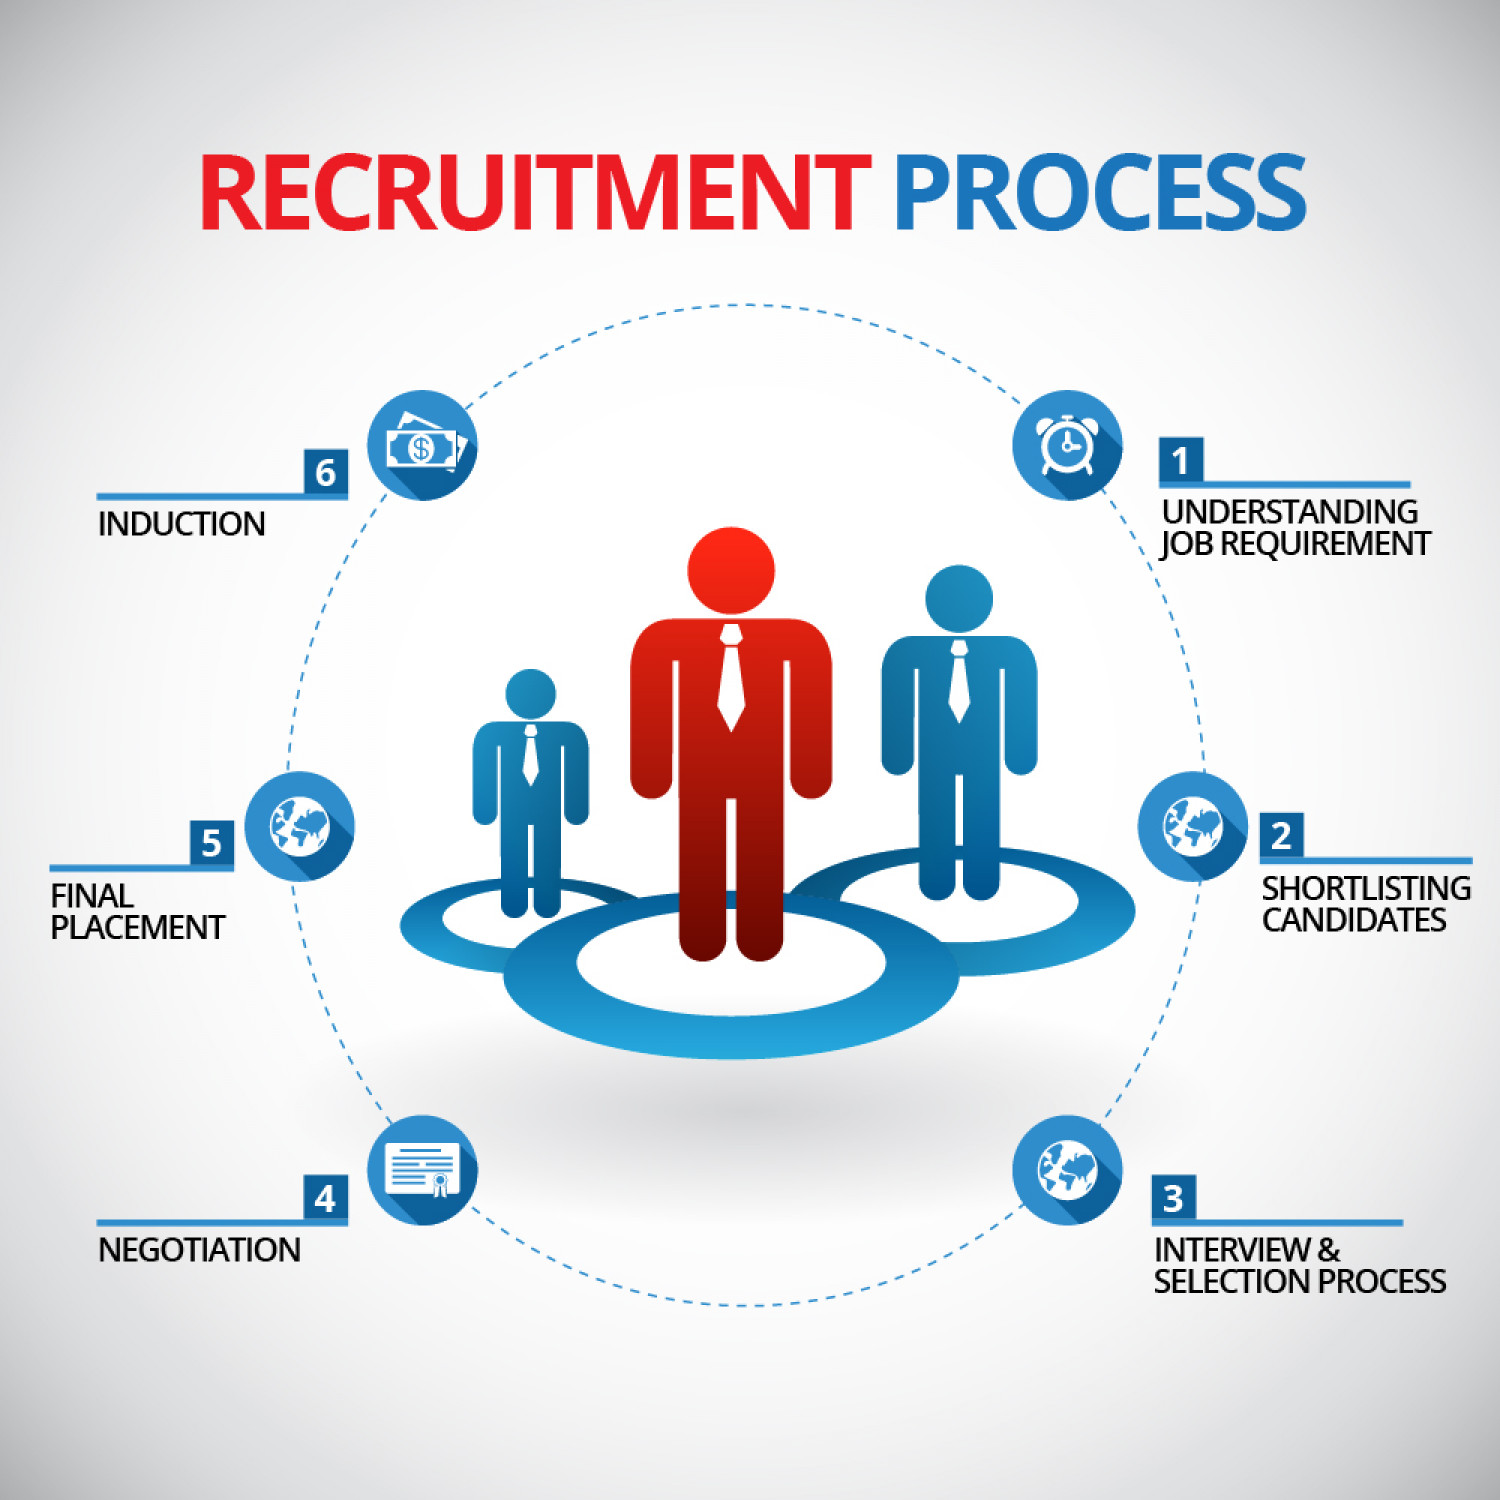 Recruitment Process: 5 Steps Involved in Recruitment Process (with diagram)